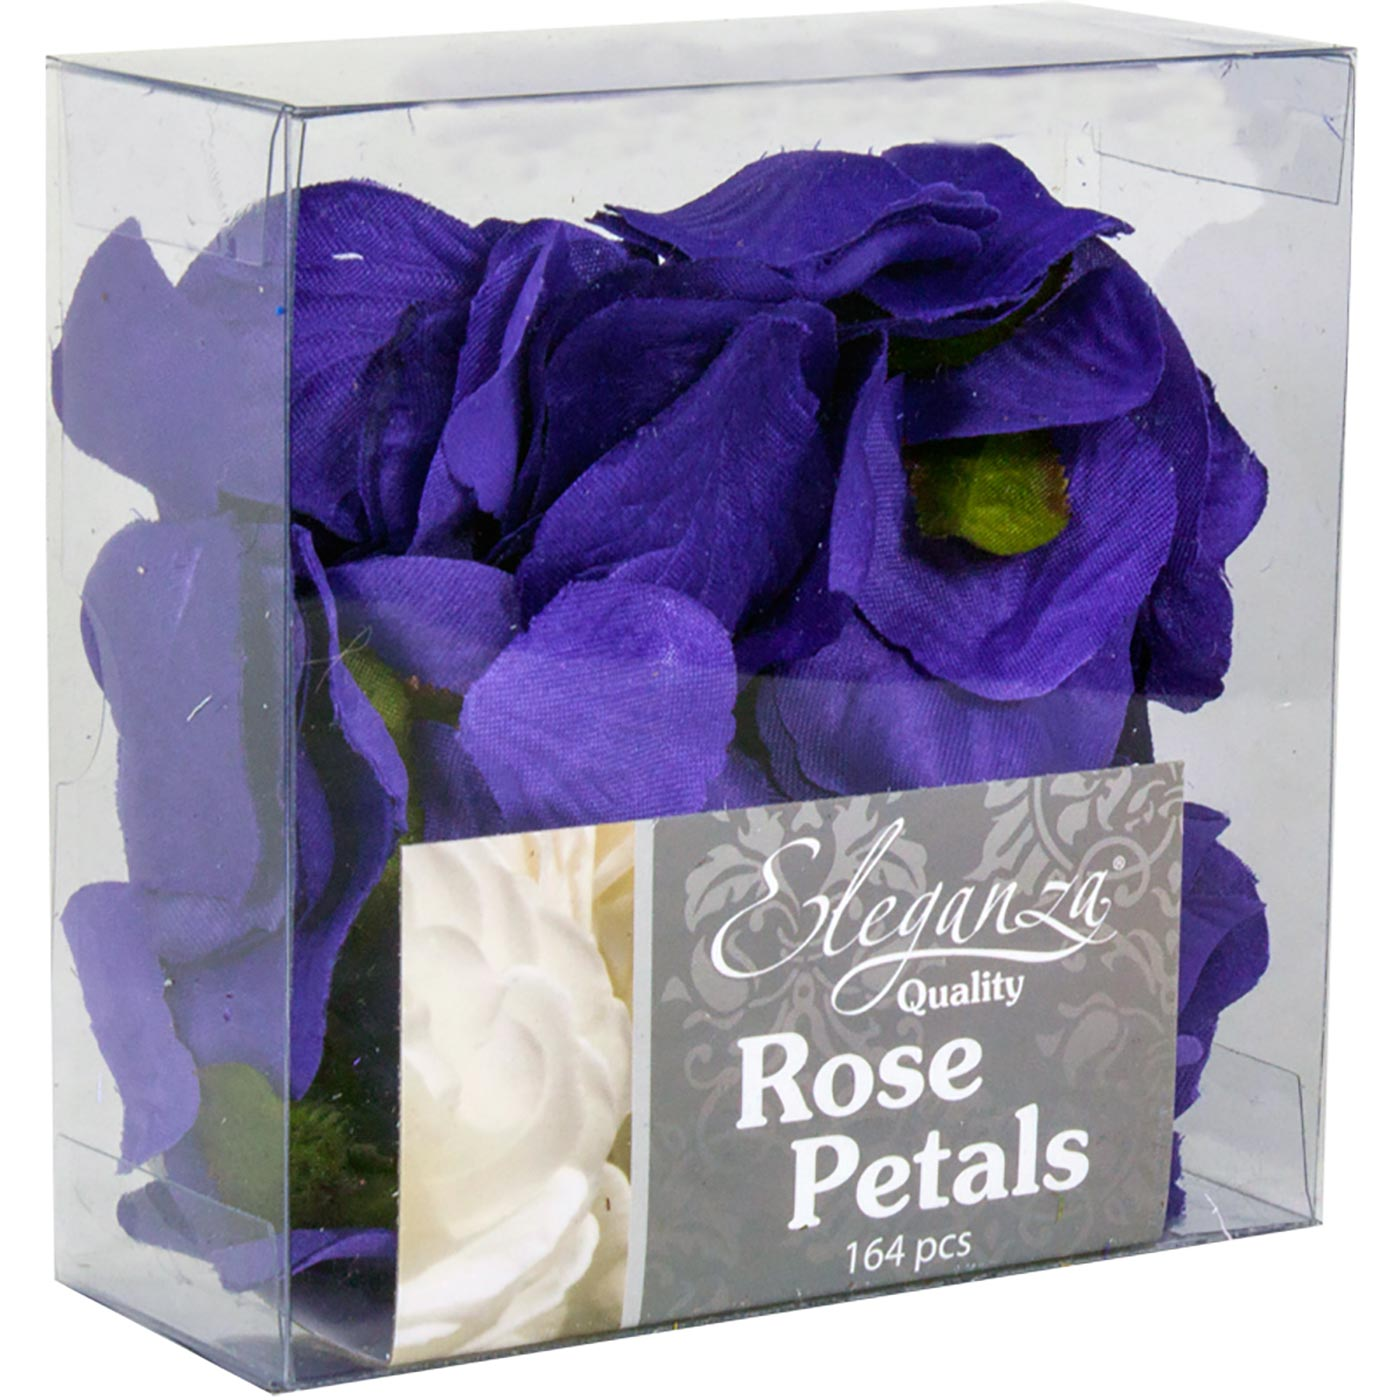 Eleganza Rose Petals Acetate box 164pcs Purple